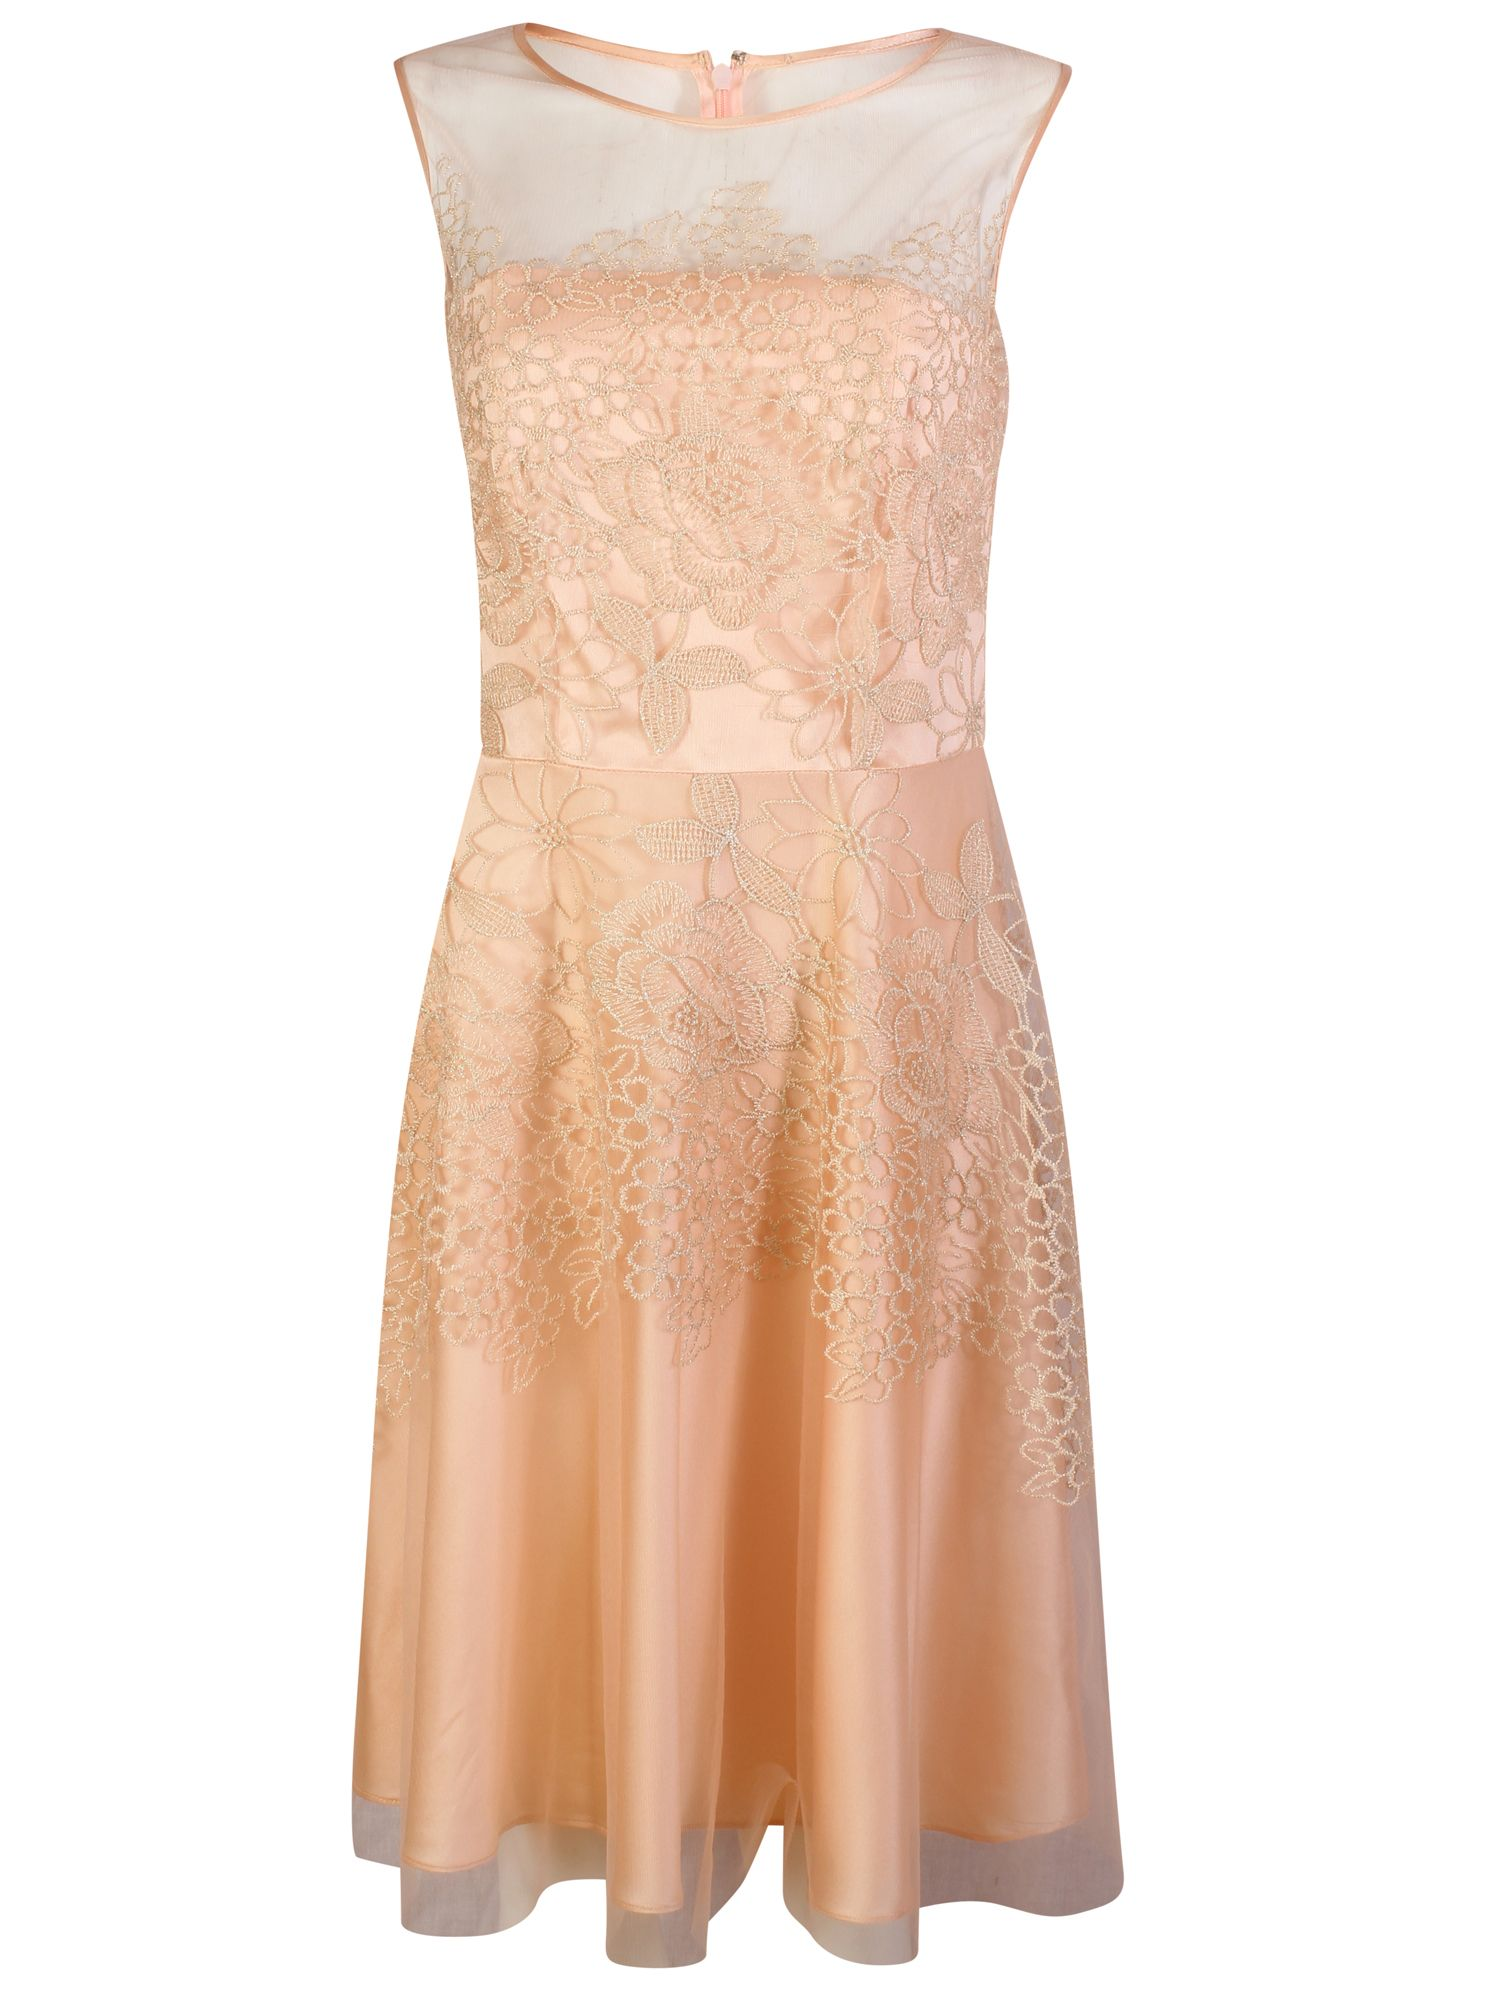 Tahari ASL Fit and flare blush pink dress, Pink